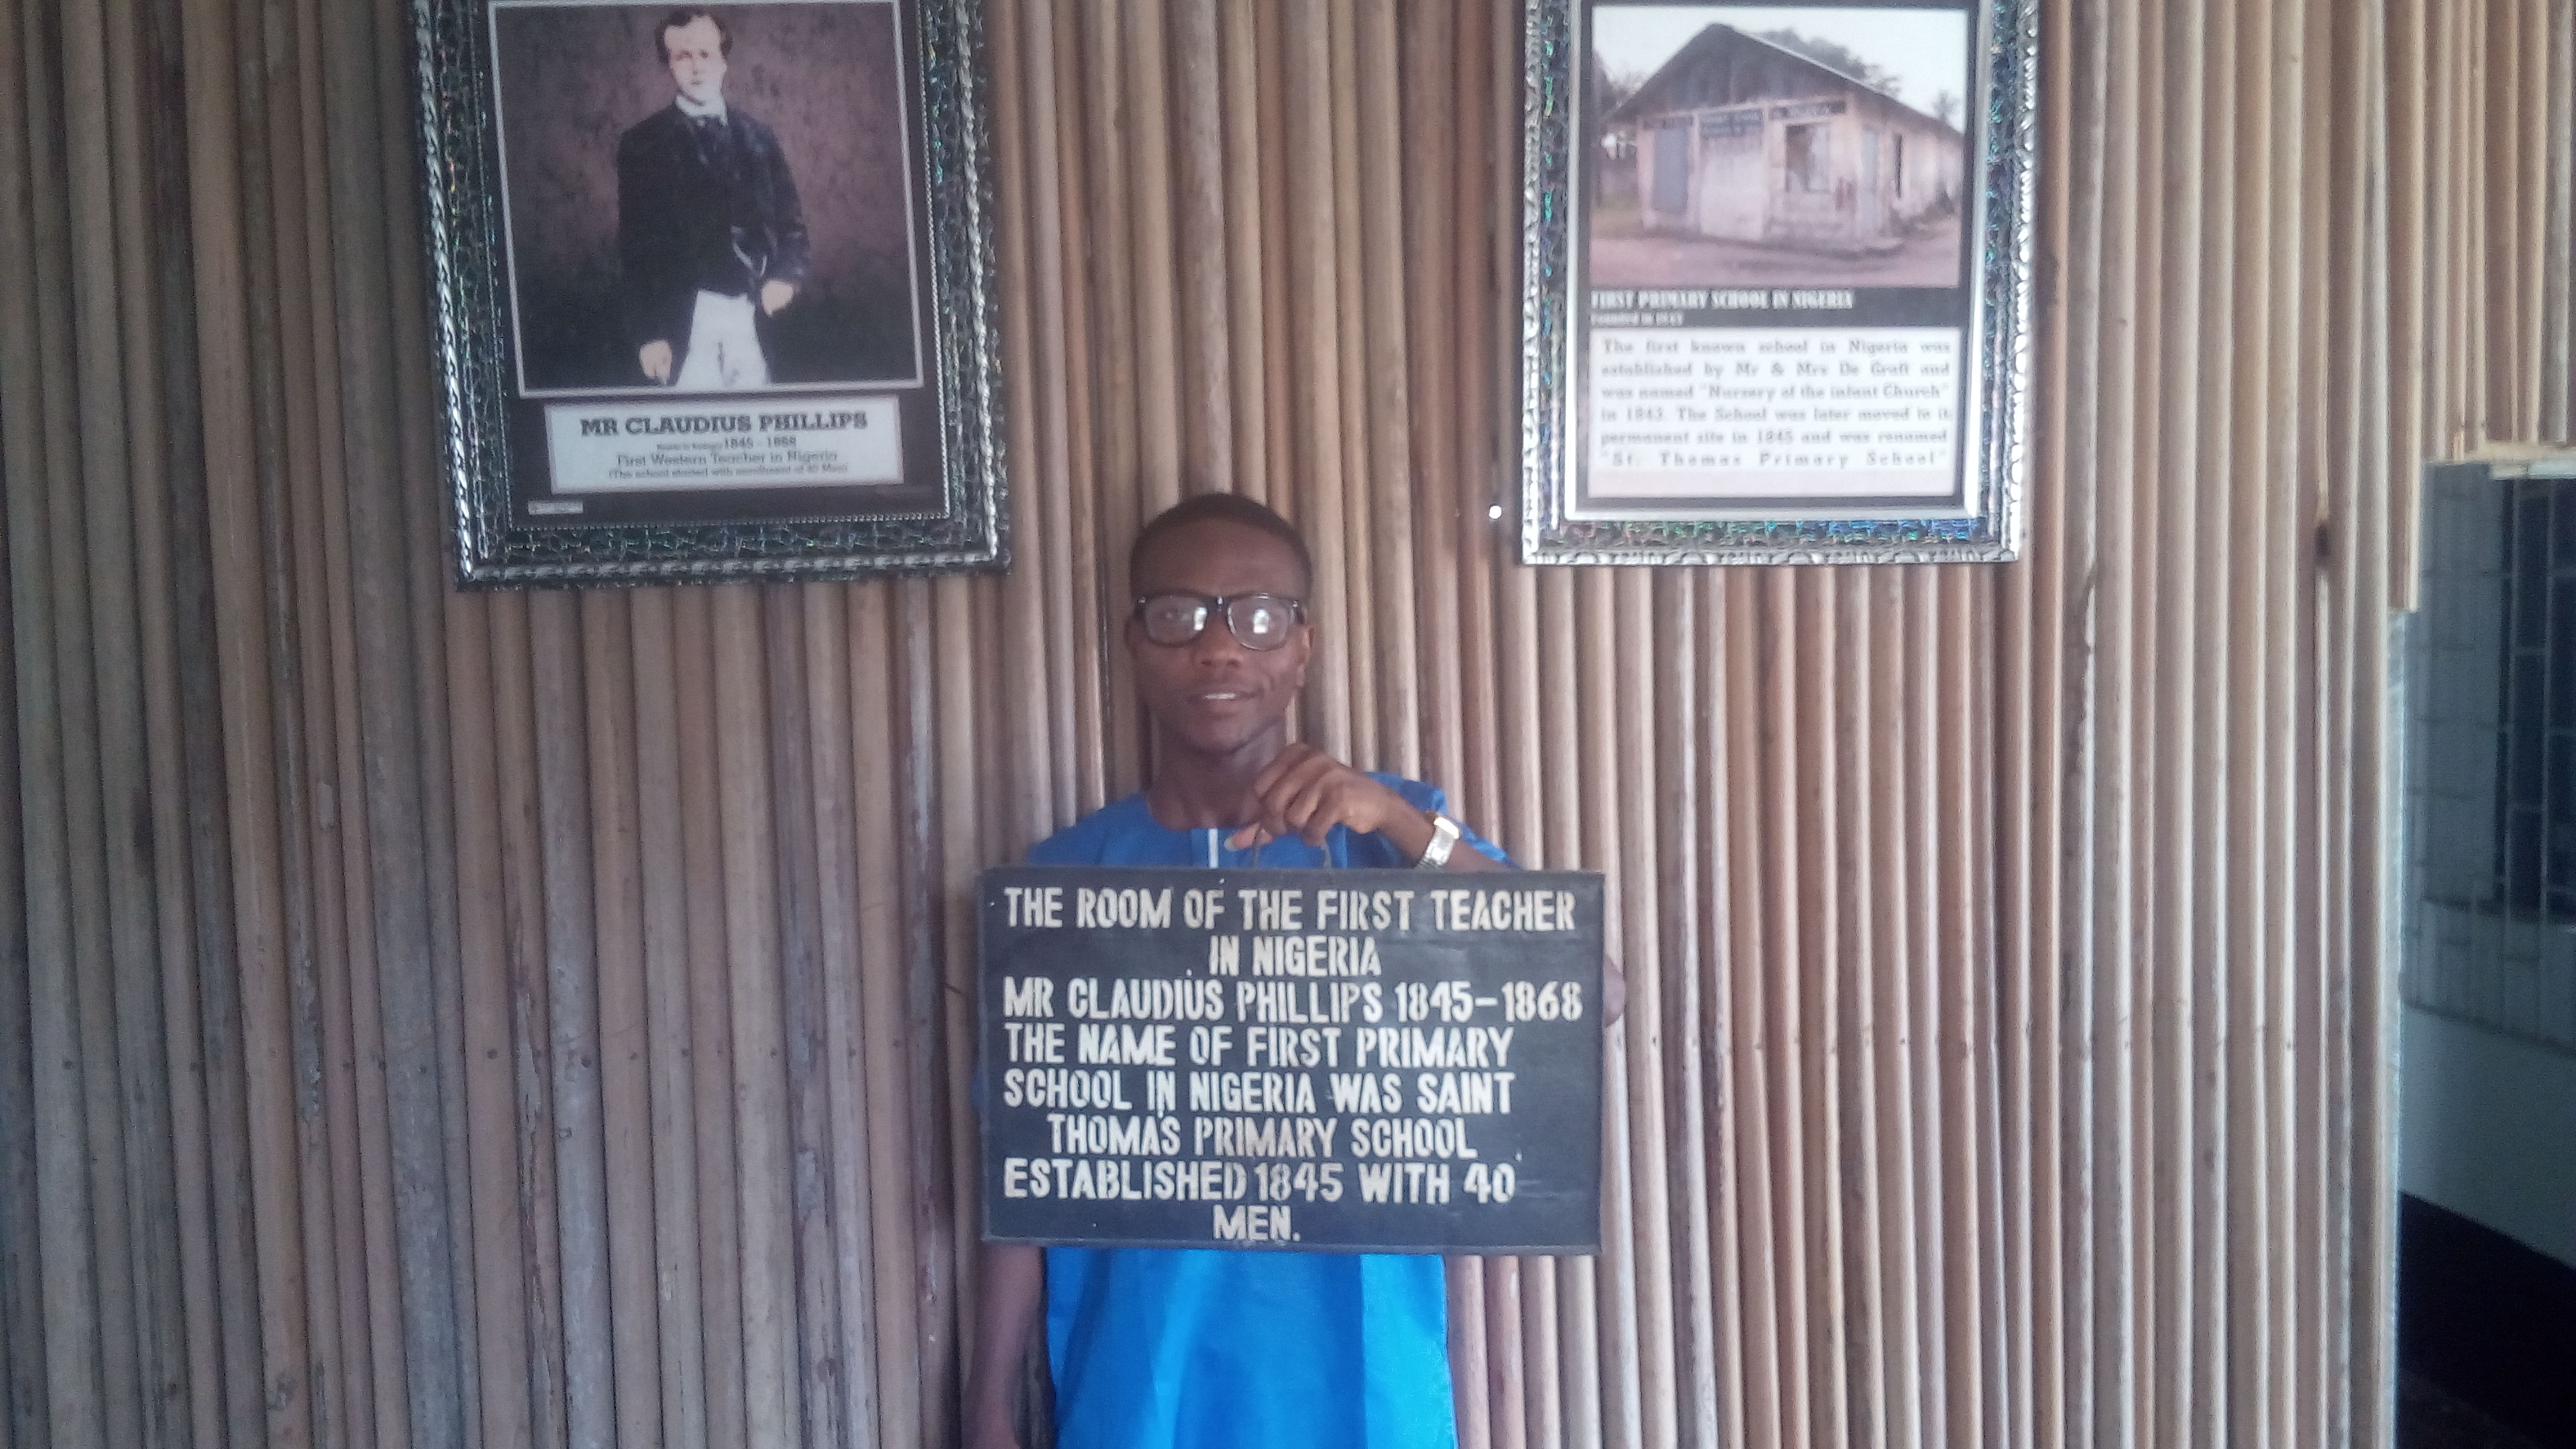 rooms inside the first storey building in Nigeria.